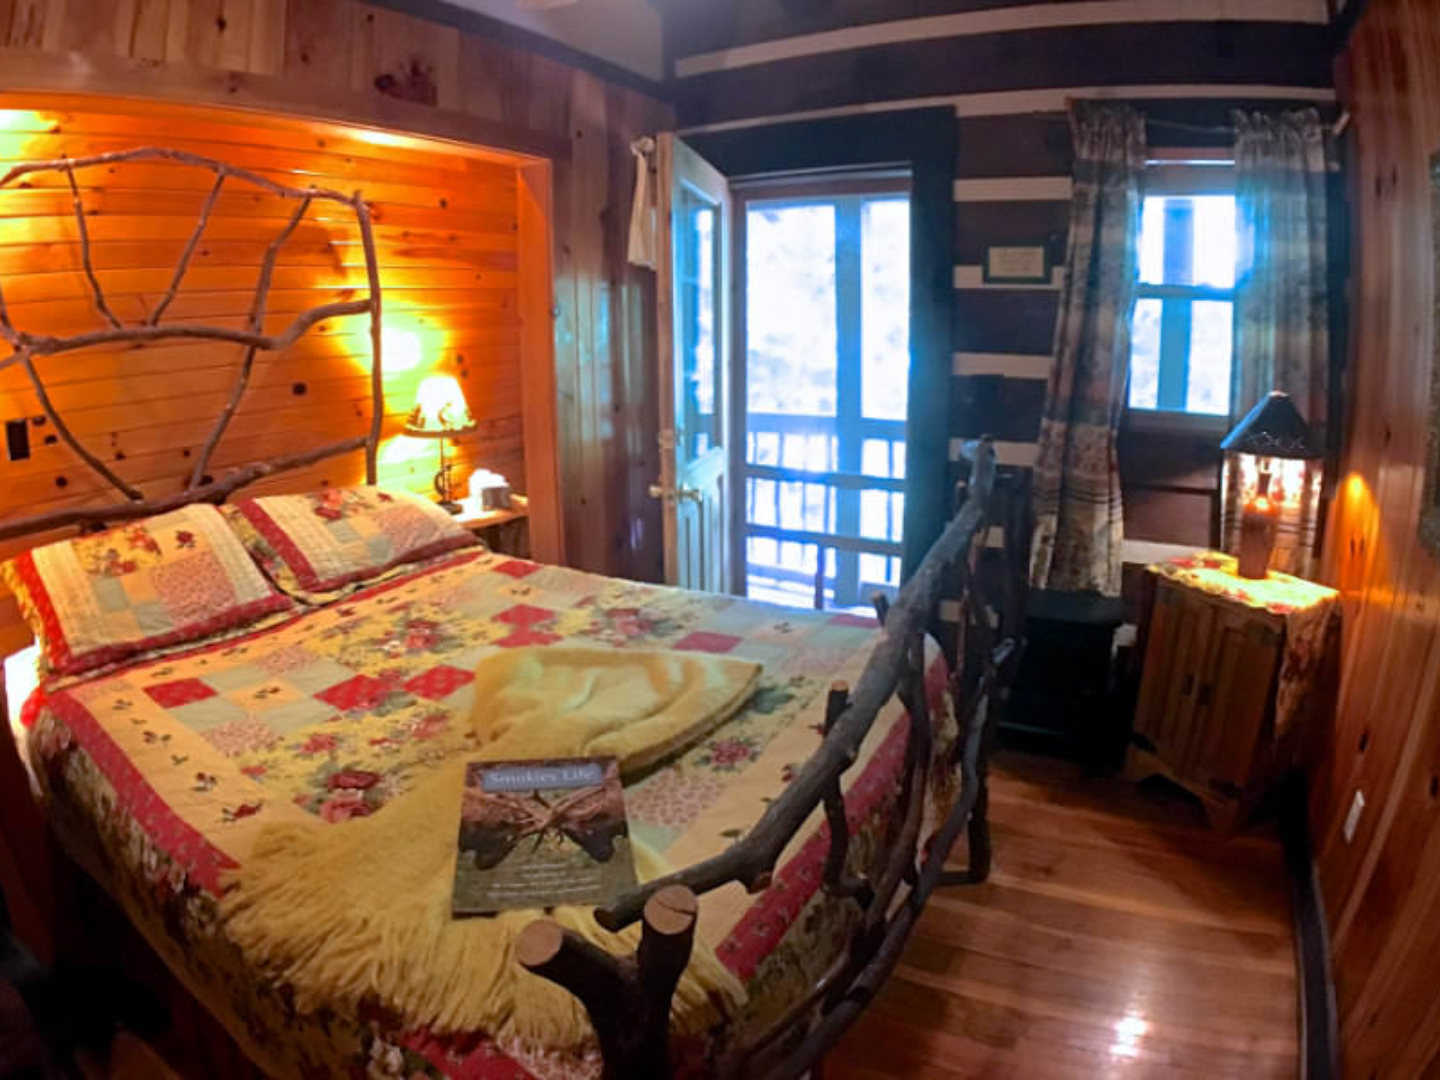 A bedroom with a bed in a room at Creekwalk Inn and Cabins.